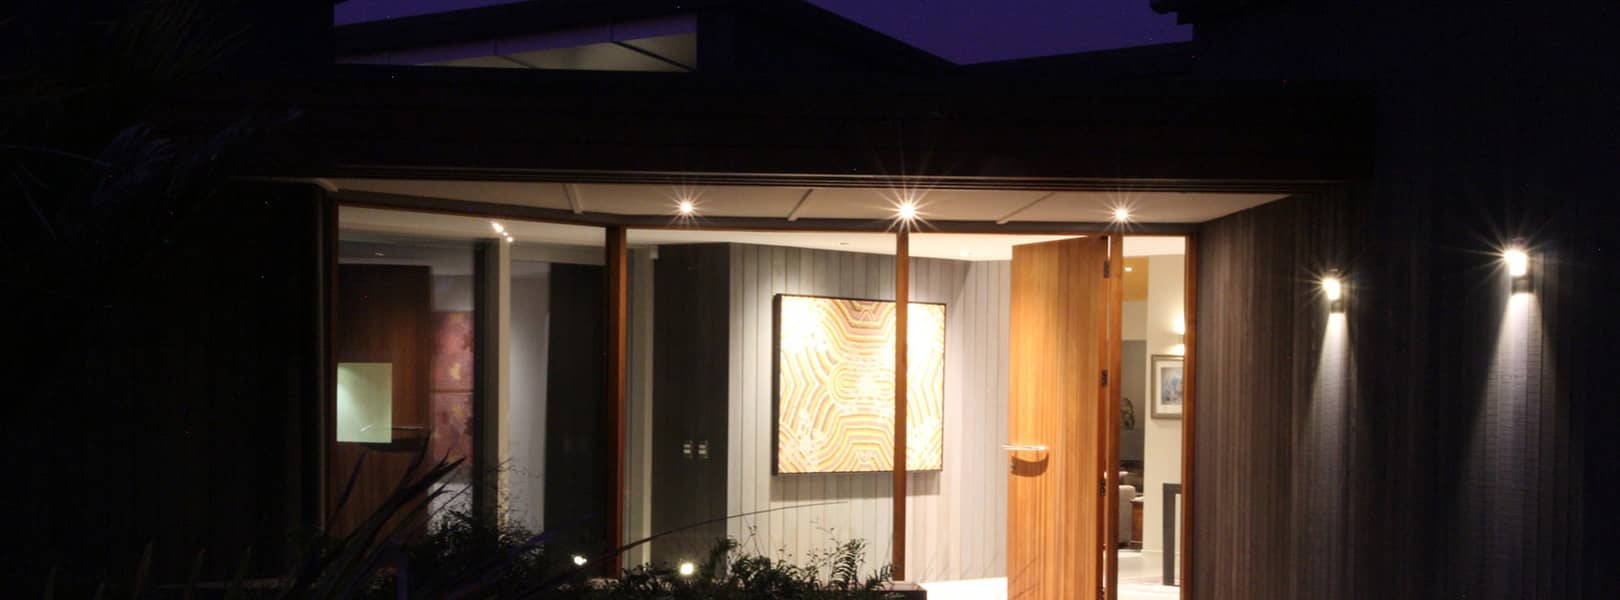 Exterior LED lighting on modern vertical timber weatherboard house